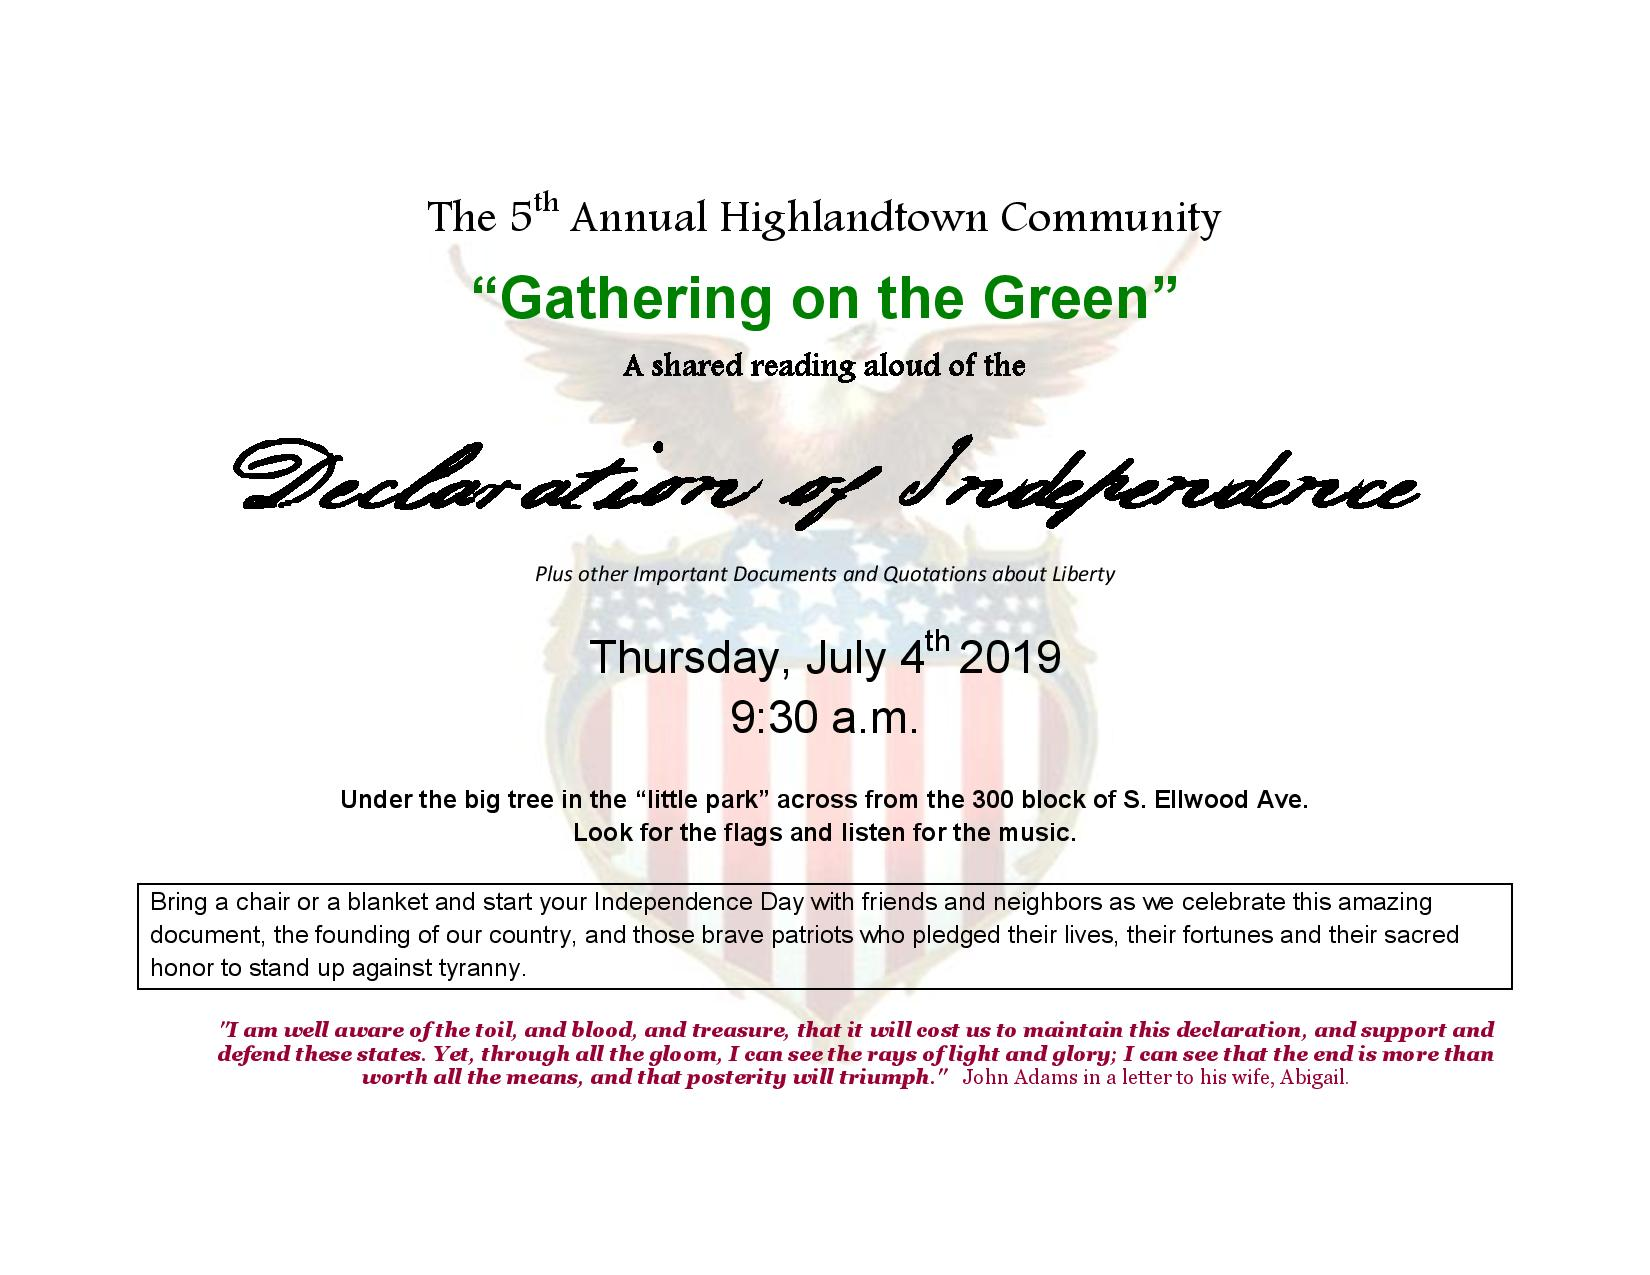 5th Annual Highlandtown Community-page-001.jpg